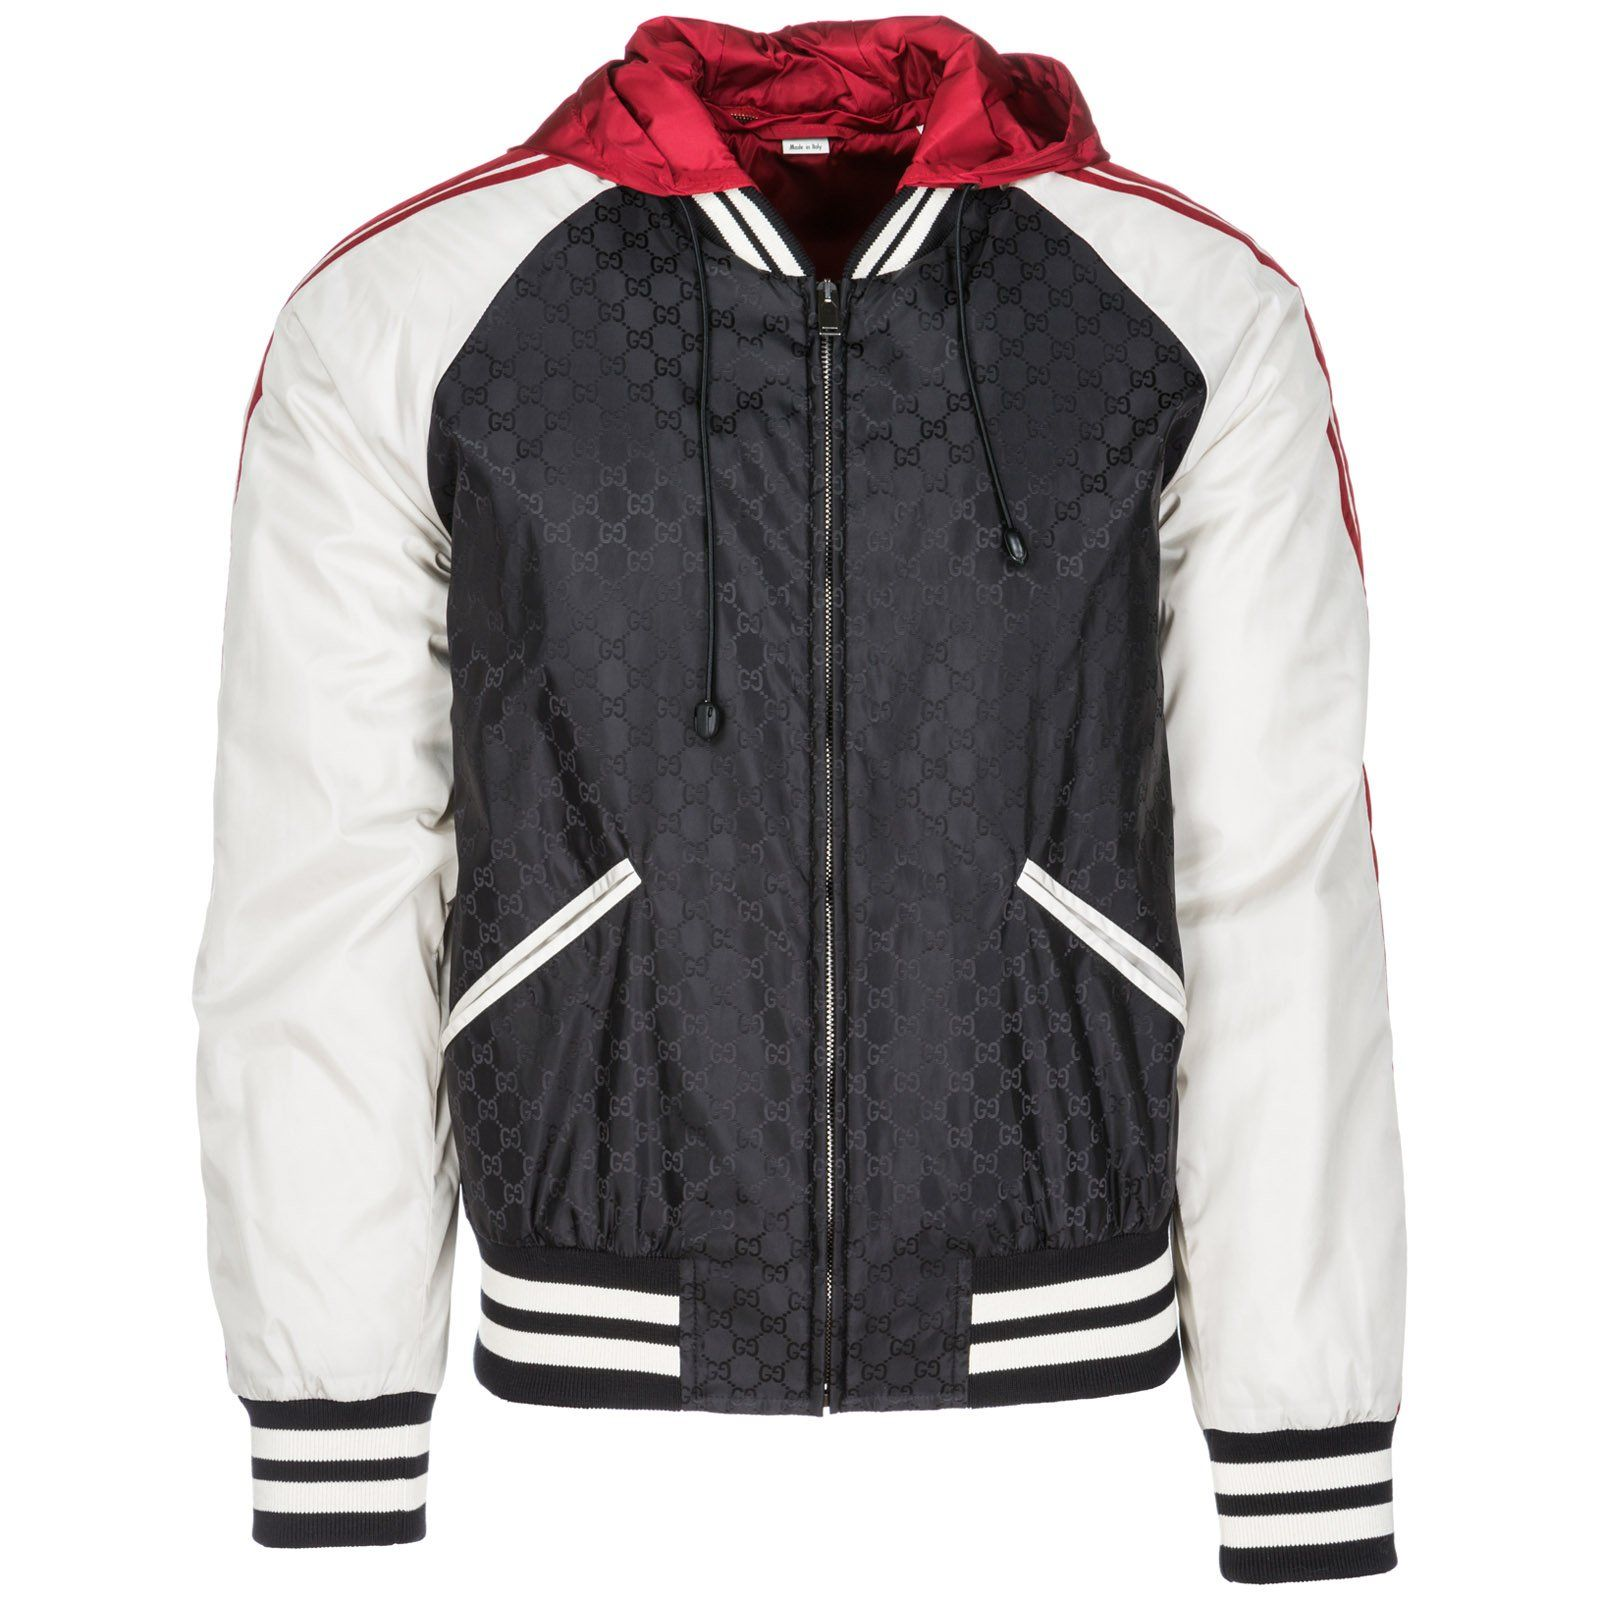 Gucci Gucci Contrasted Gg Hoodie Gucci Cloth Mens Outerwear Jacket Outerwear Jackets Gucci Men [ 1600 x 1600 Pixel ]